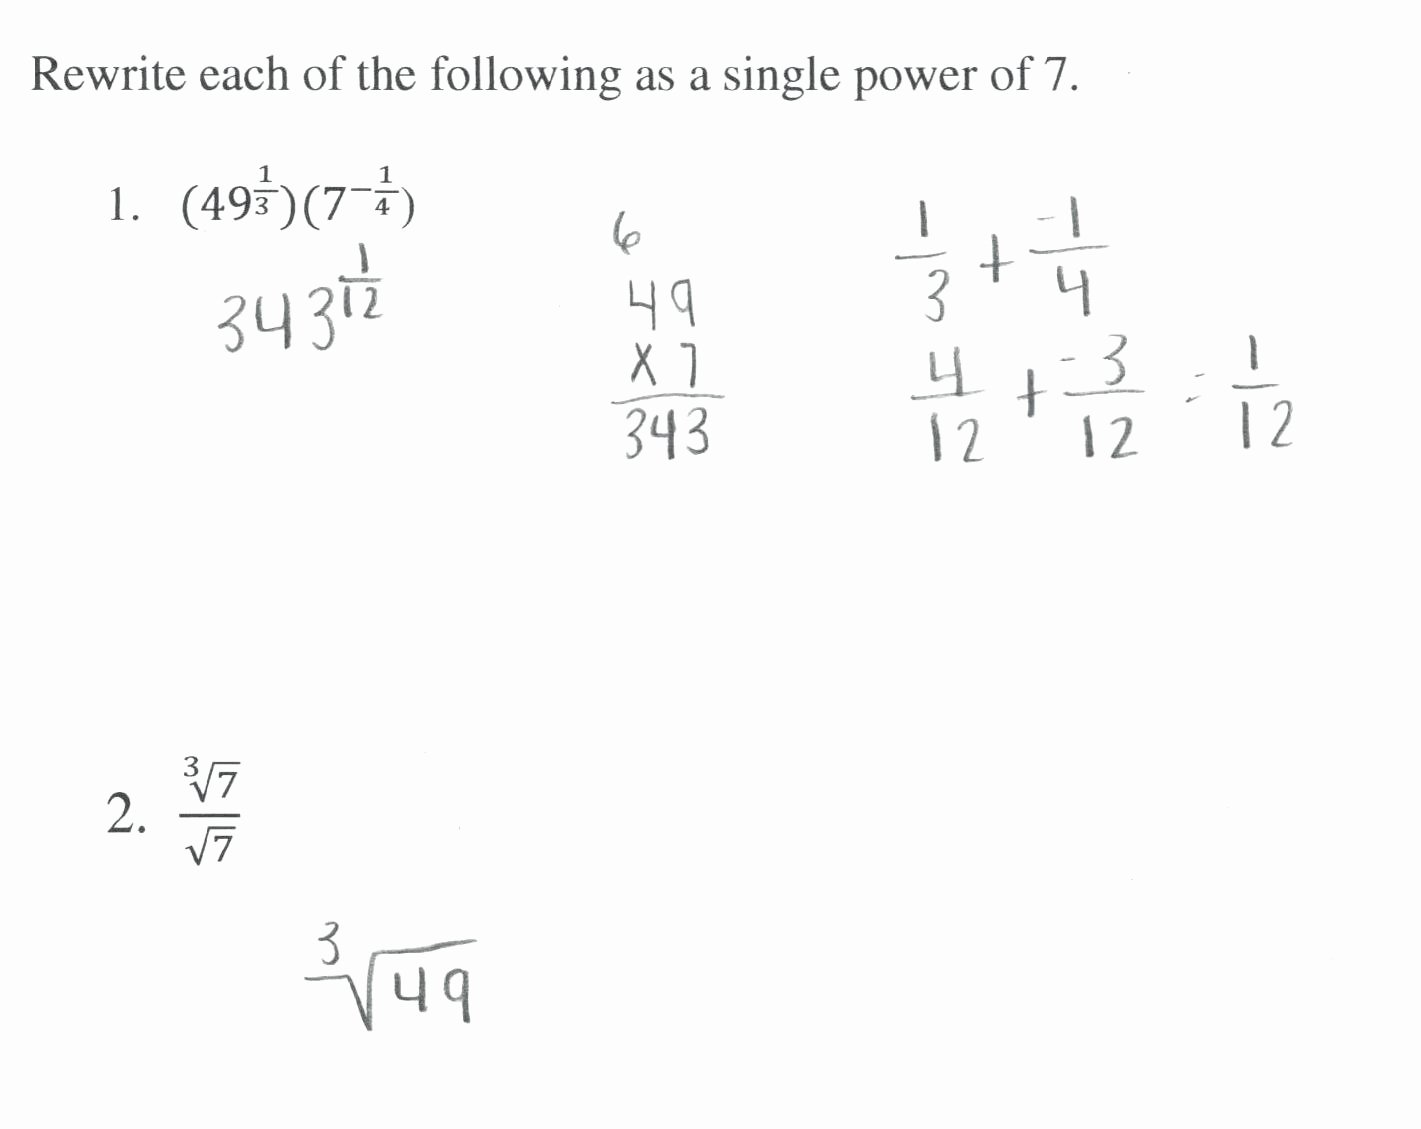 50 Radical And Rational Exponents Worksheet